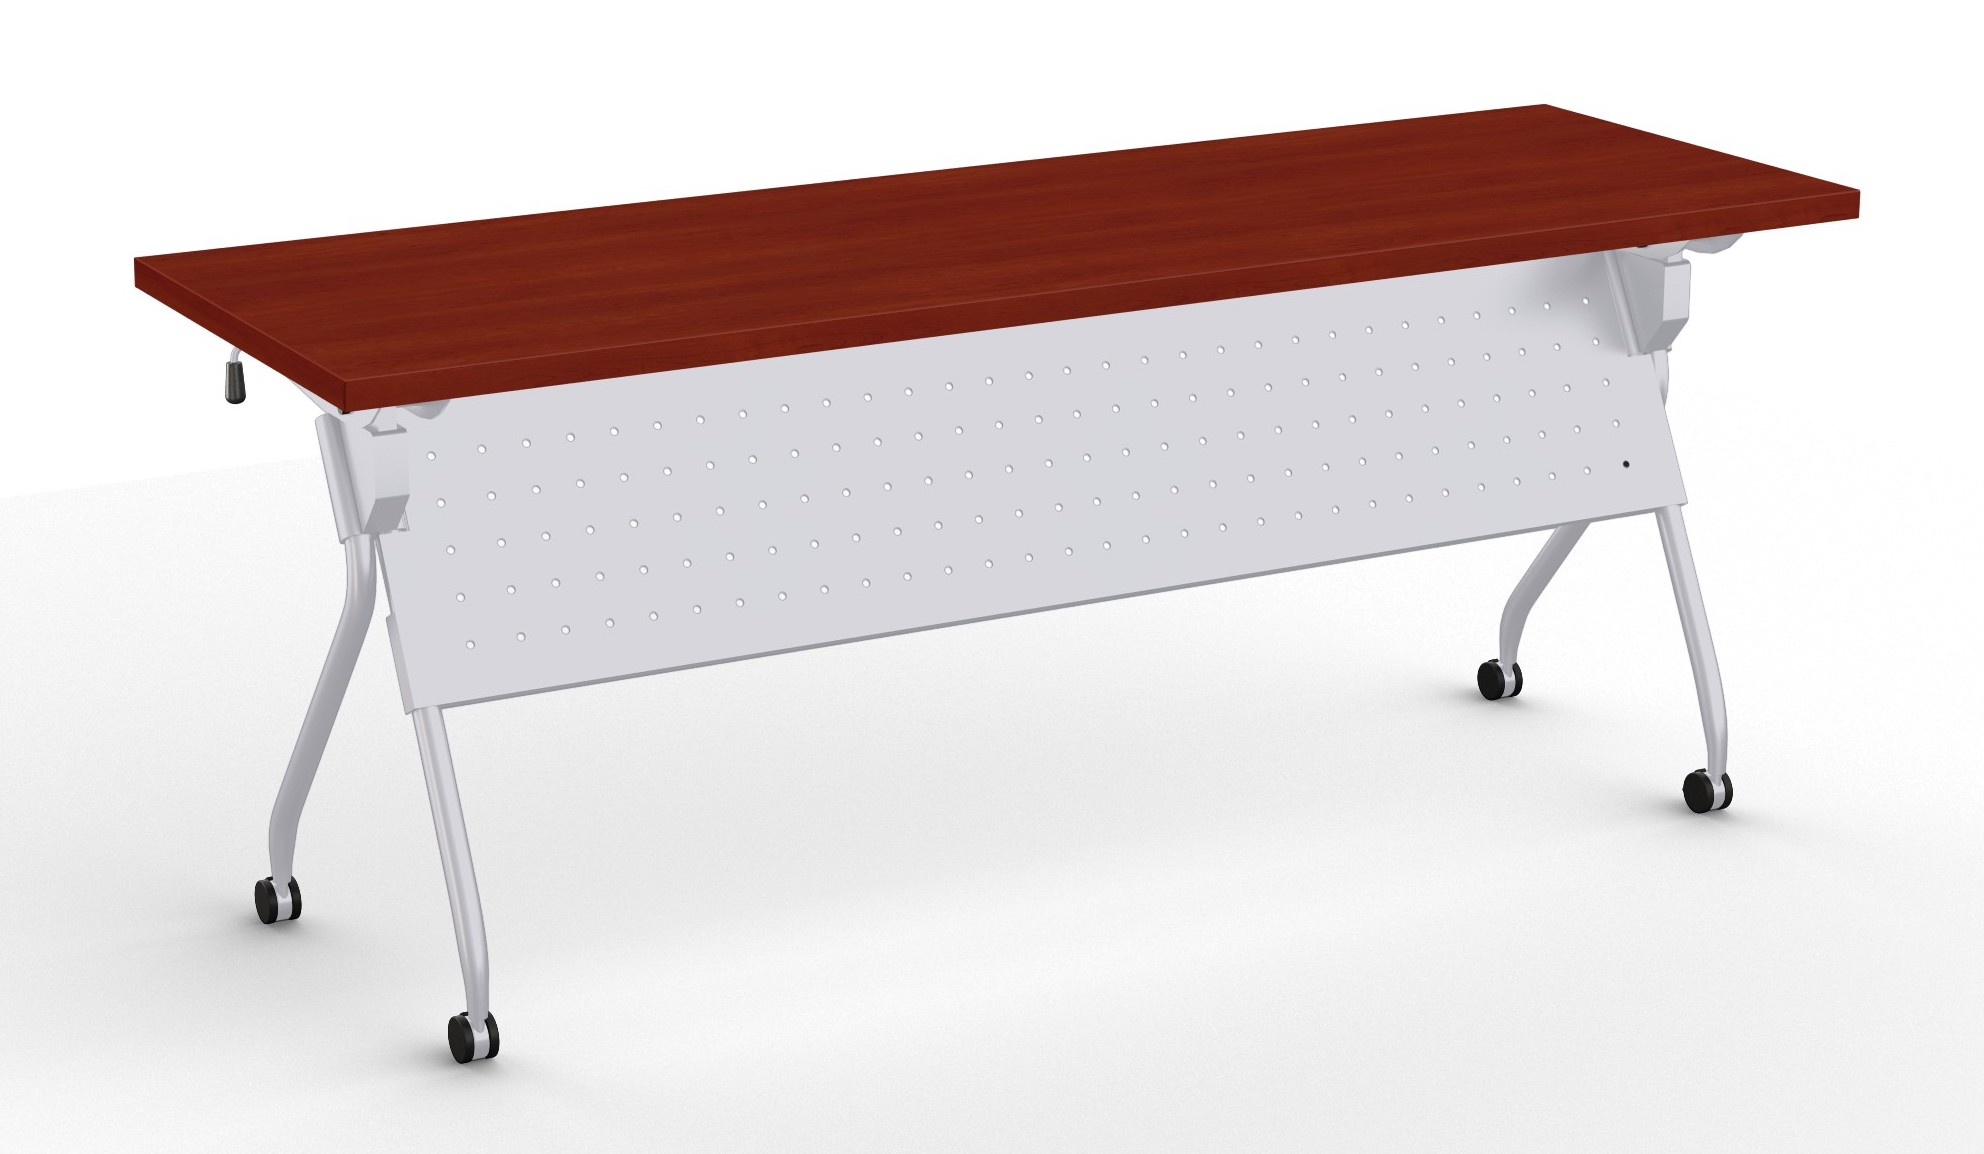 transform-2 table in cherry